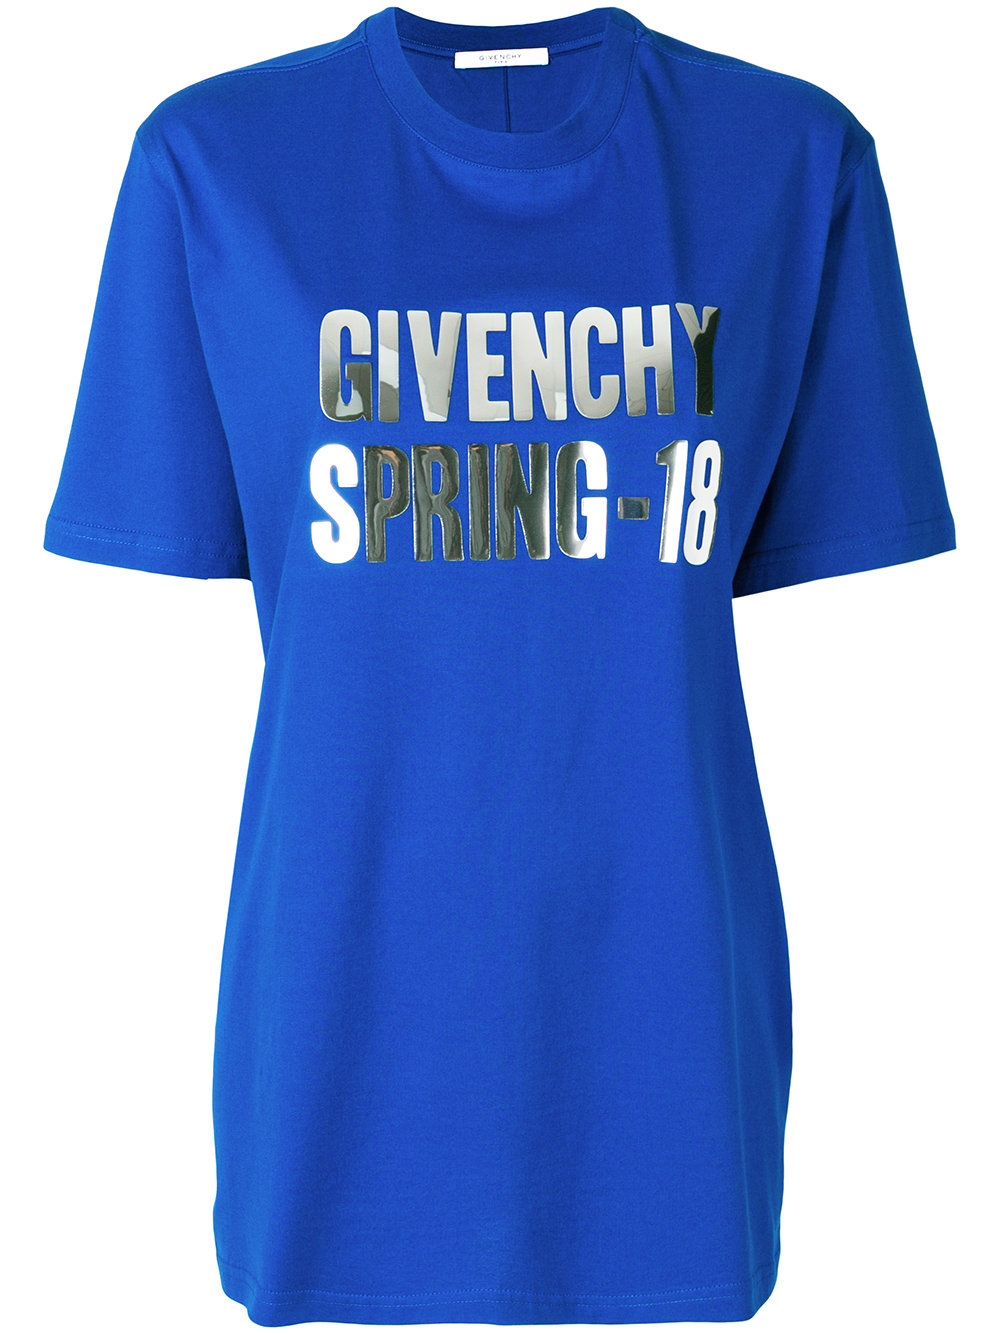 Givenchy SPRING